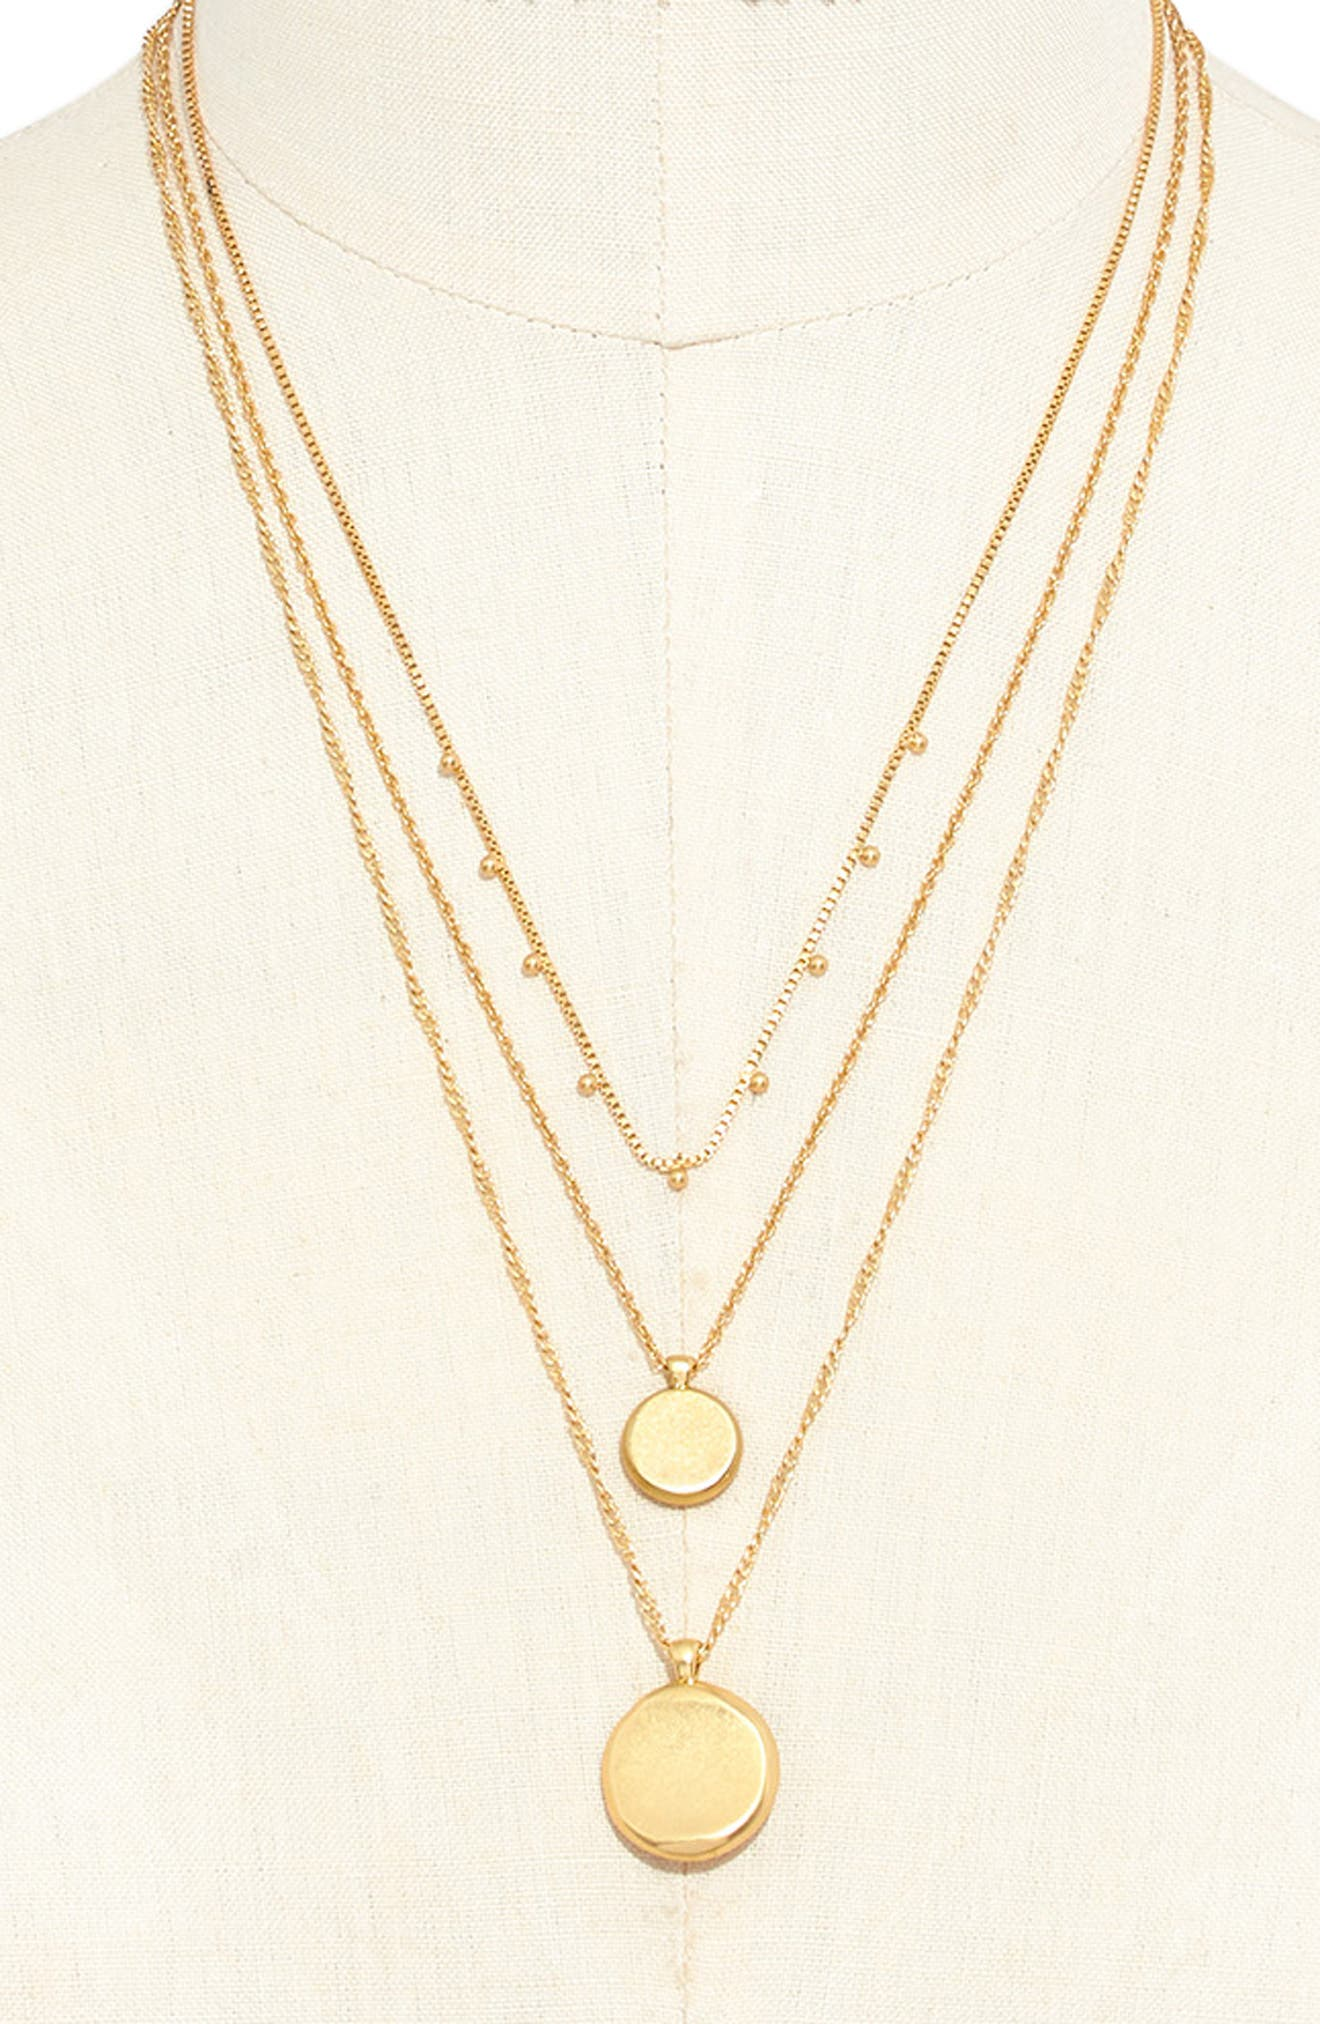 MADEWELL, Coin Layered Necklace, Alternate thumbnail 3, color, VINTAGE GOLD